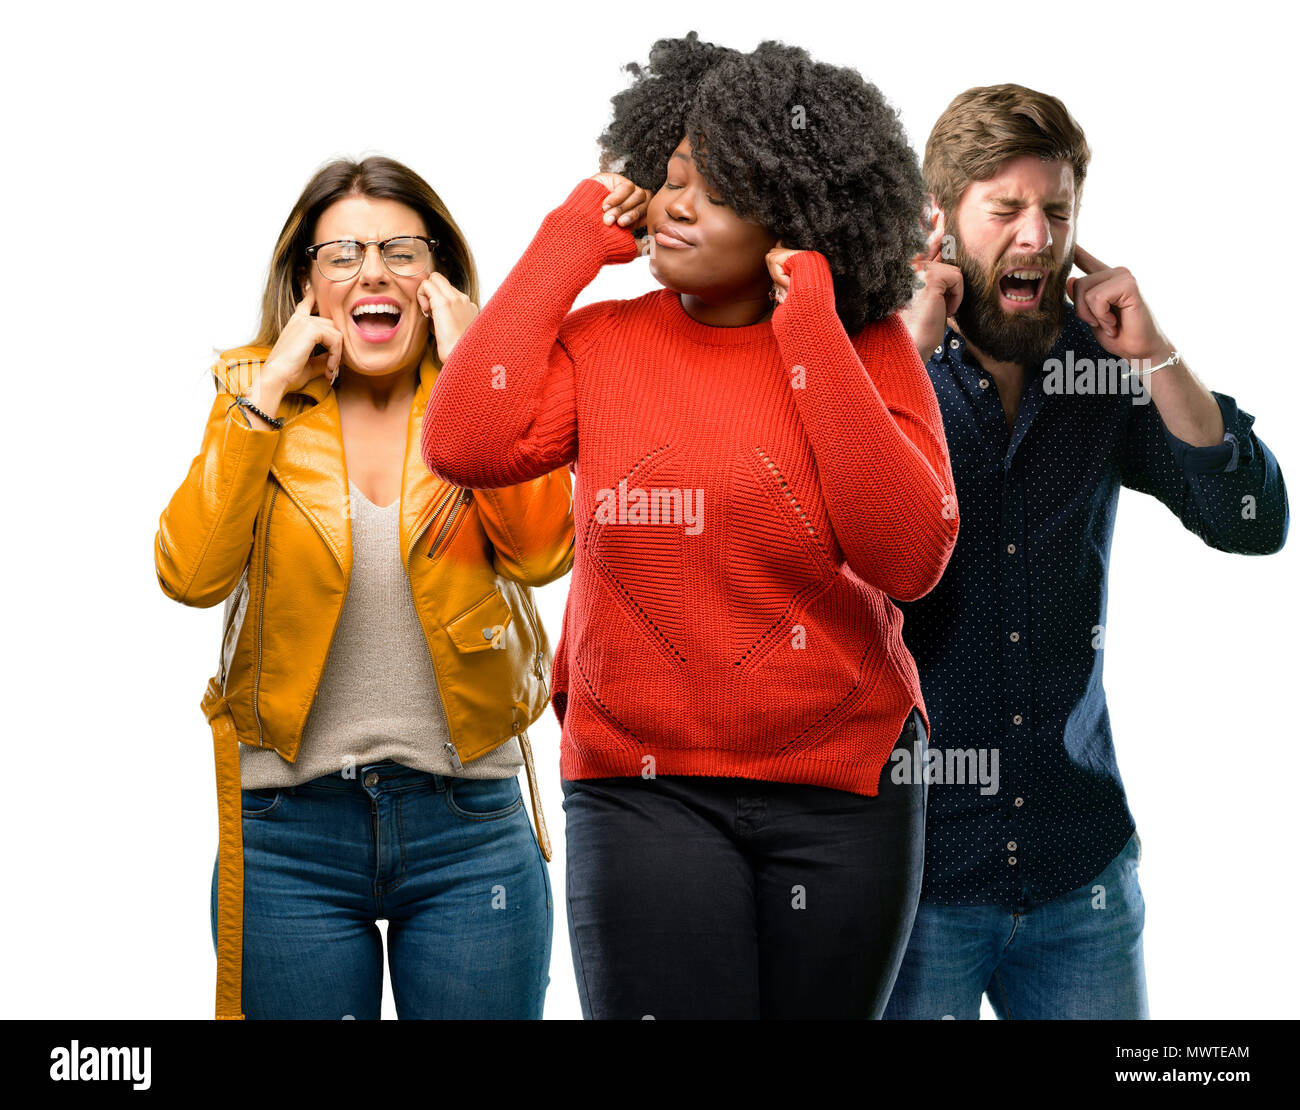 Group of three young men and women covering ears ignoring